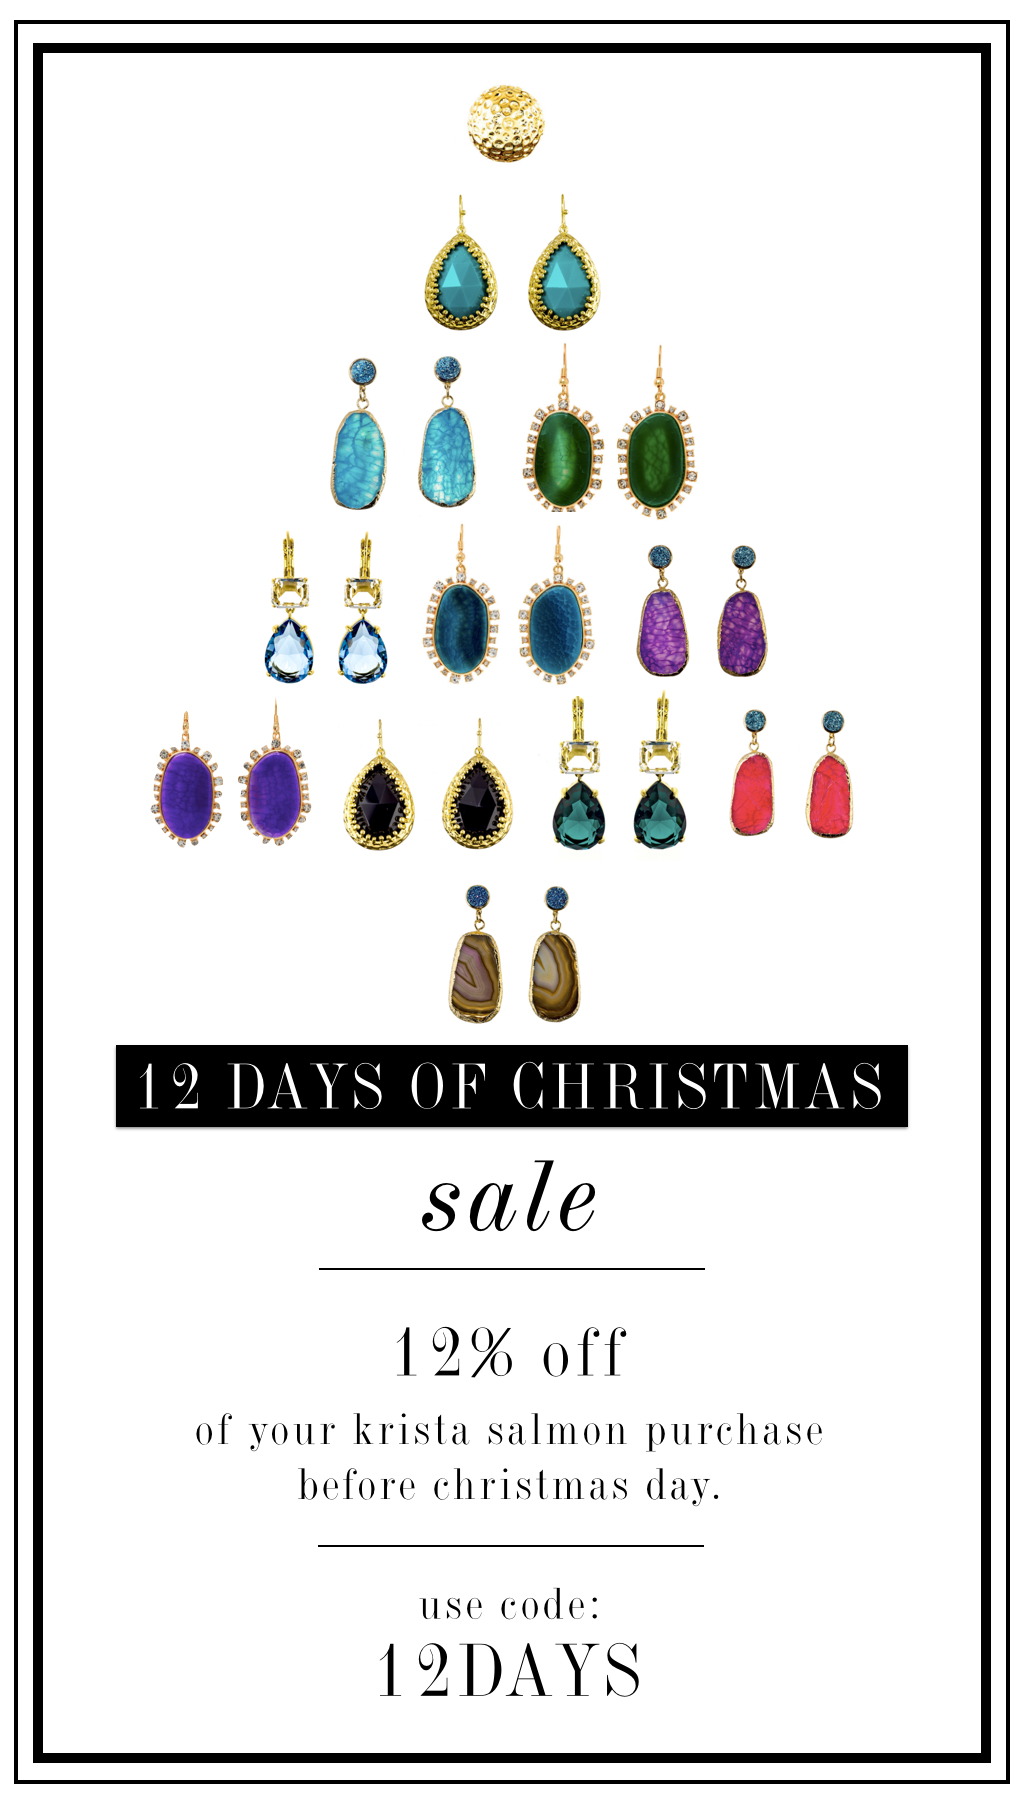 12 % off sale til Christmas day  |  Krista Salmon Jewelry